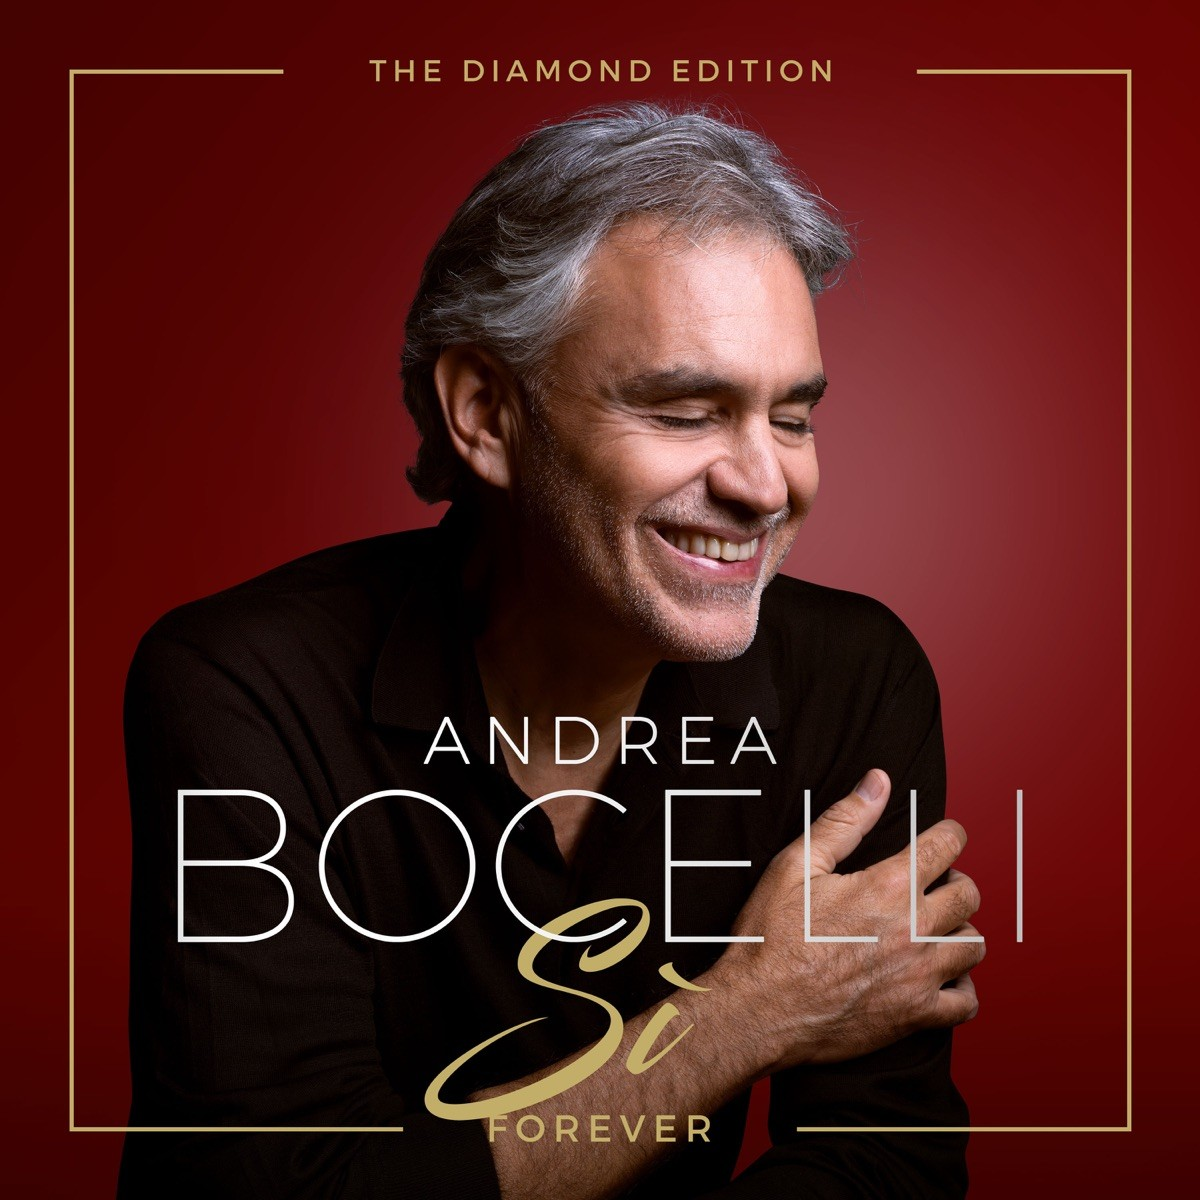 Andrea Bocelli - Sì Forever (The Diamond Edition) CD - 060250815171